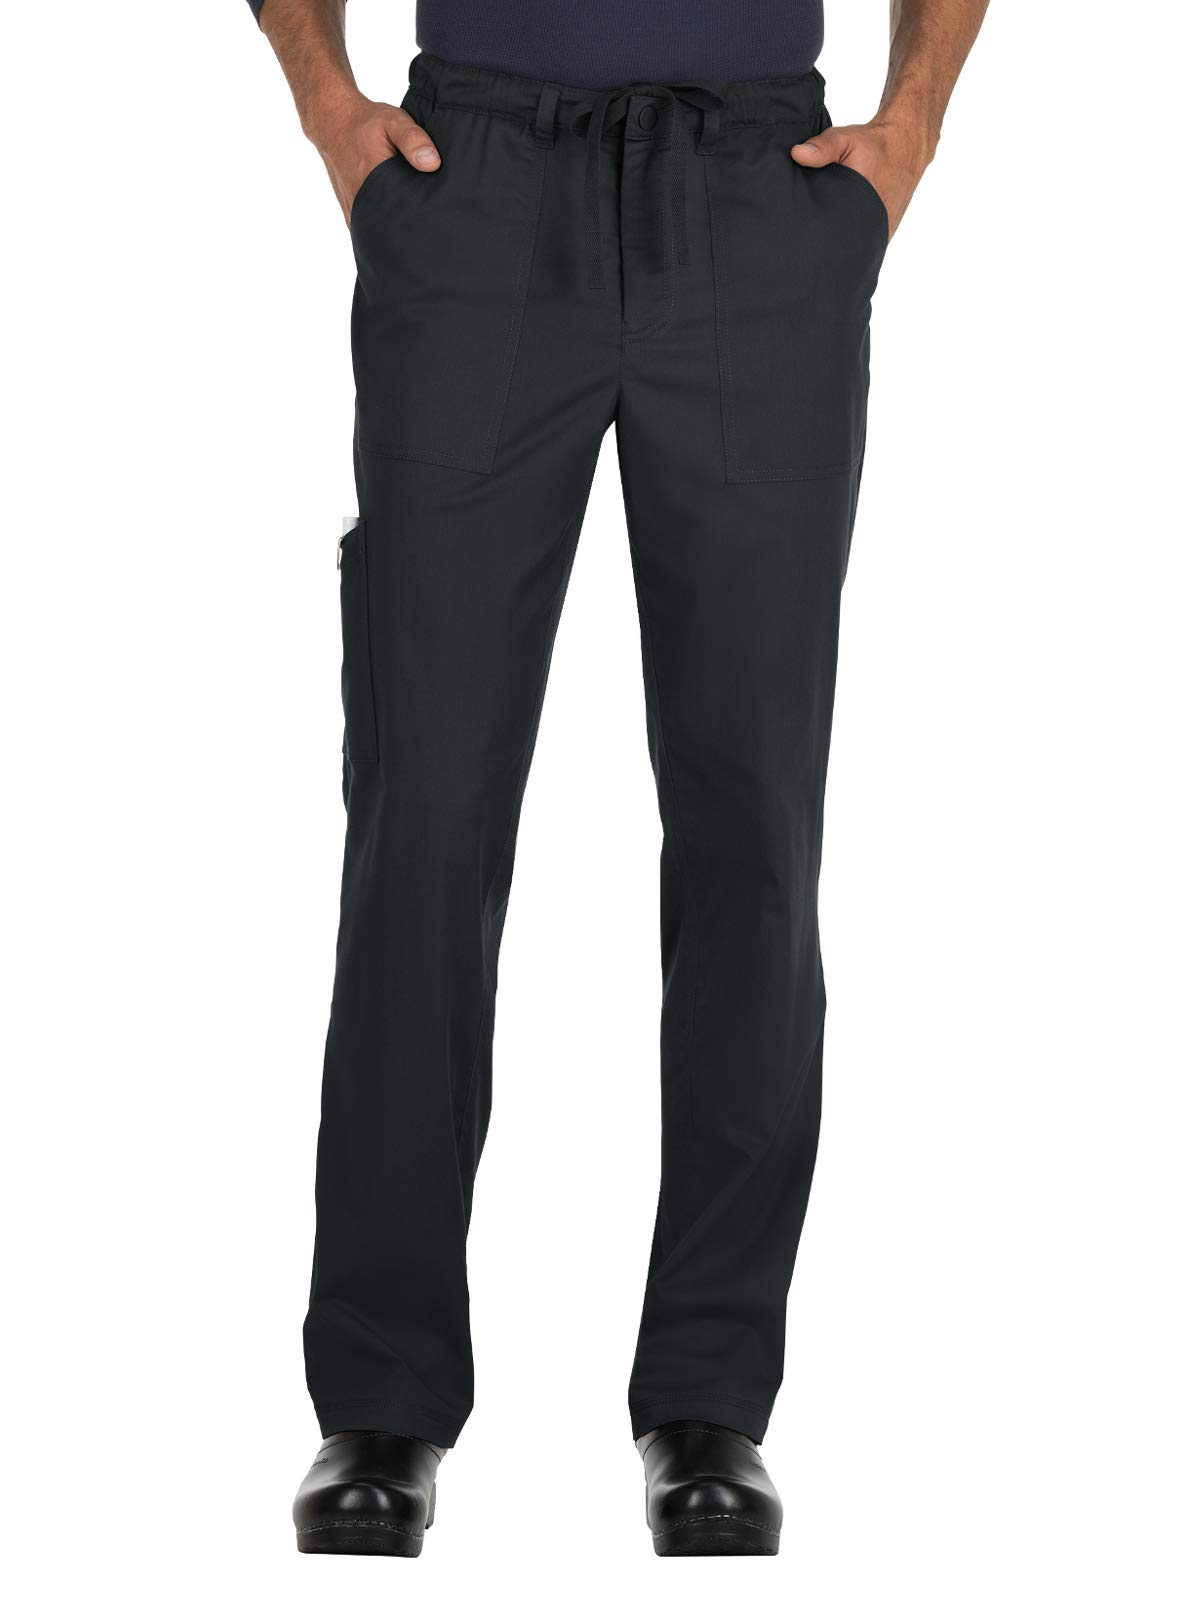 KOI Stretch 604 Men's Ryan Stretch Pant Black XS